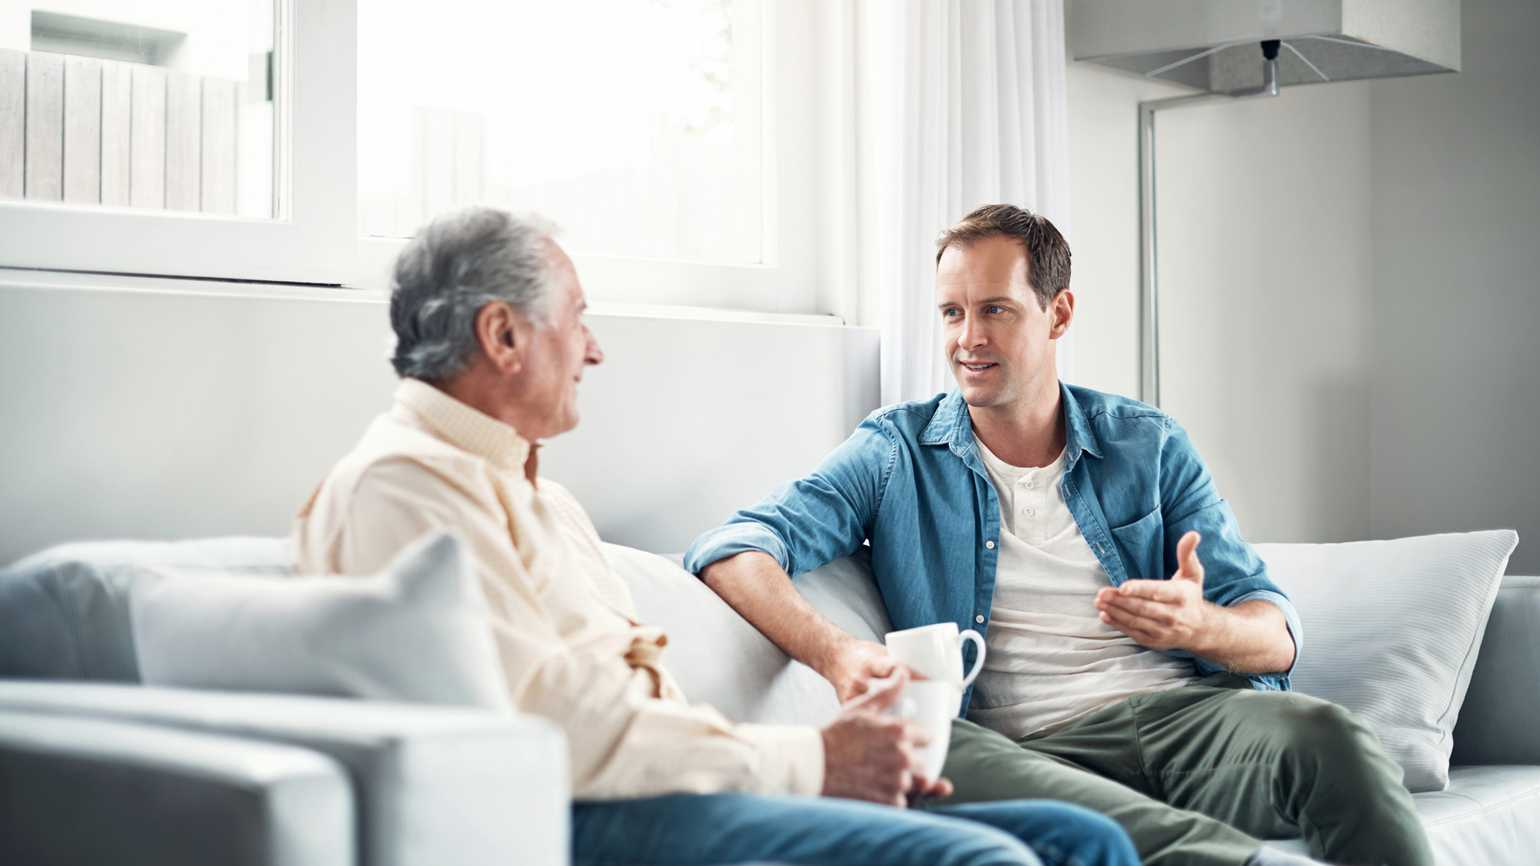 Tips for Speaking to a Person Who Has Alzheimer's